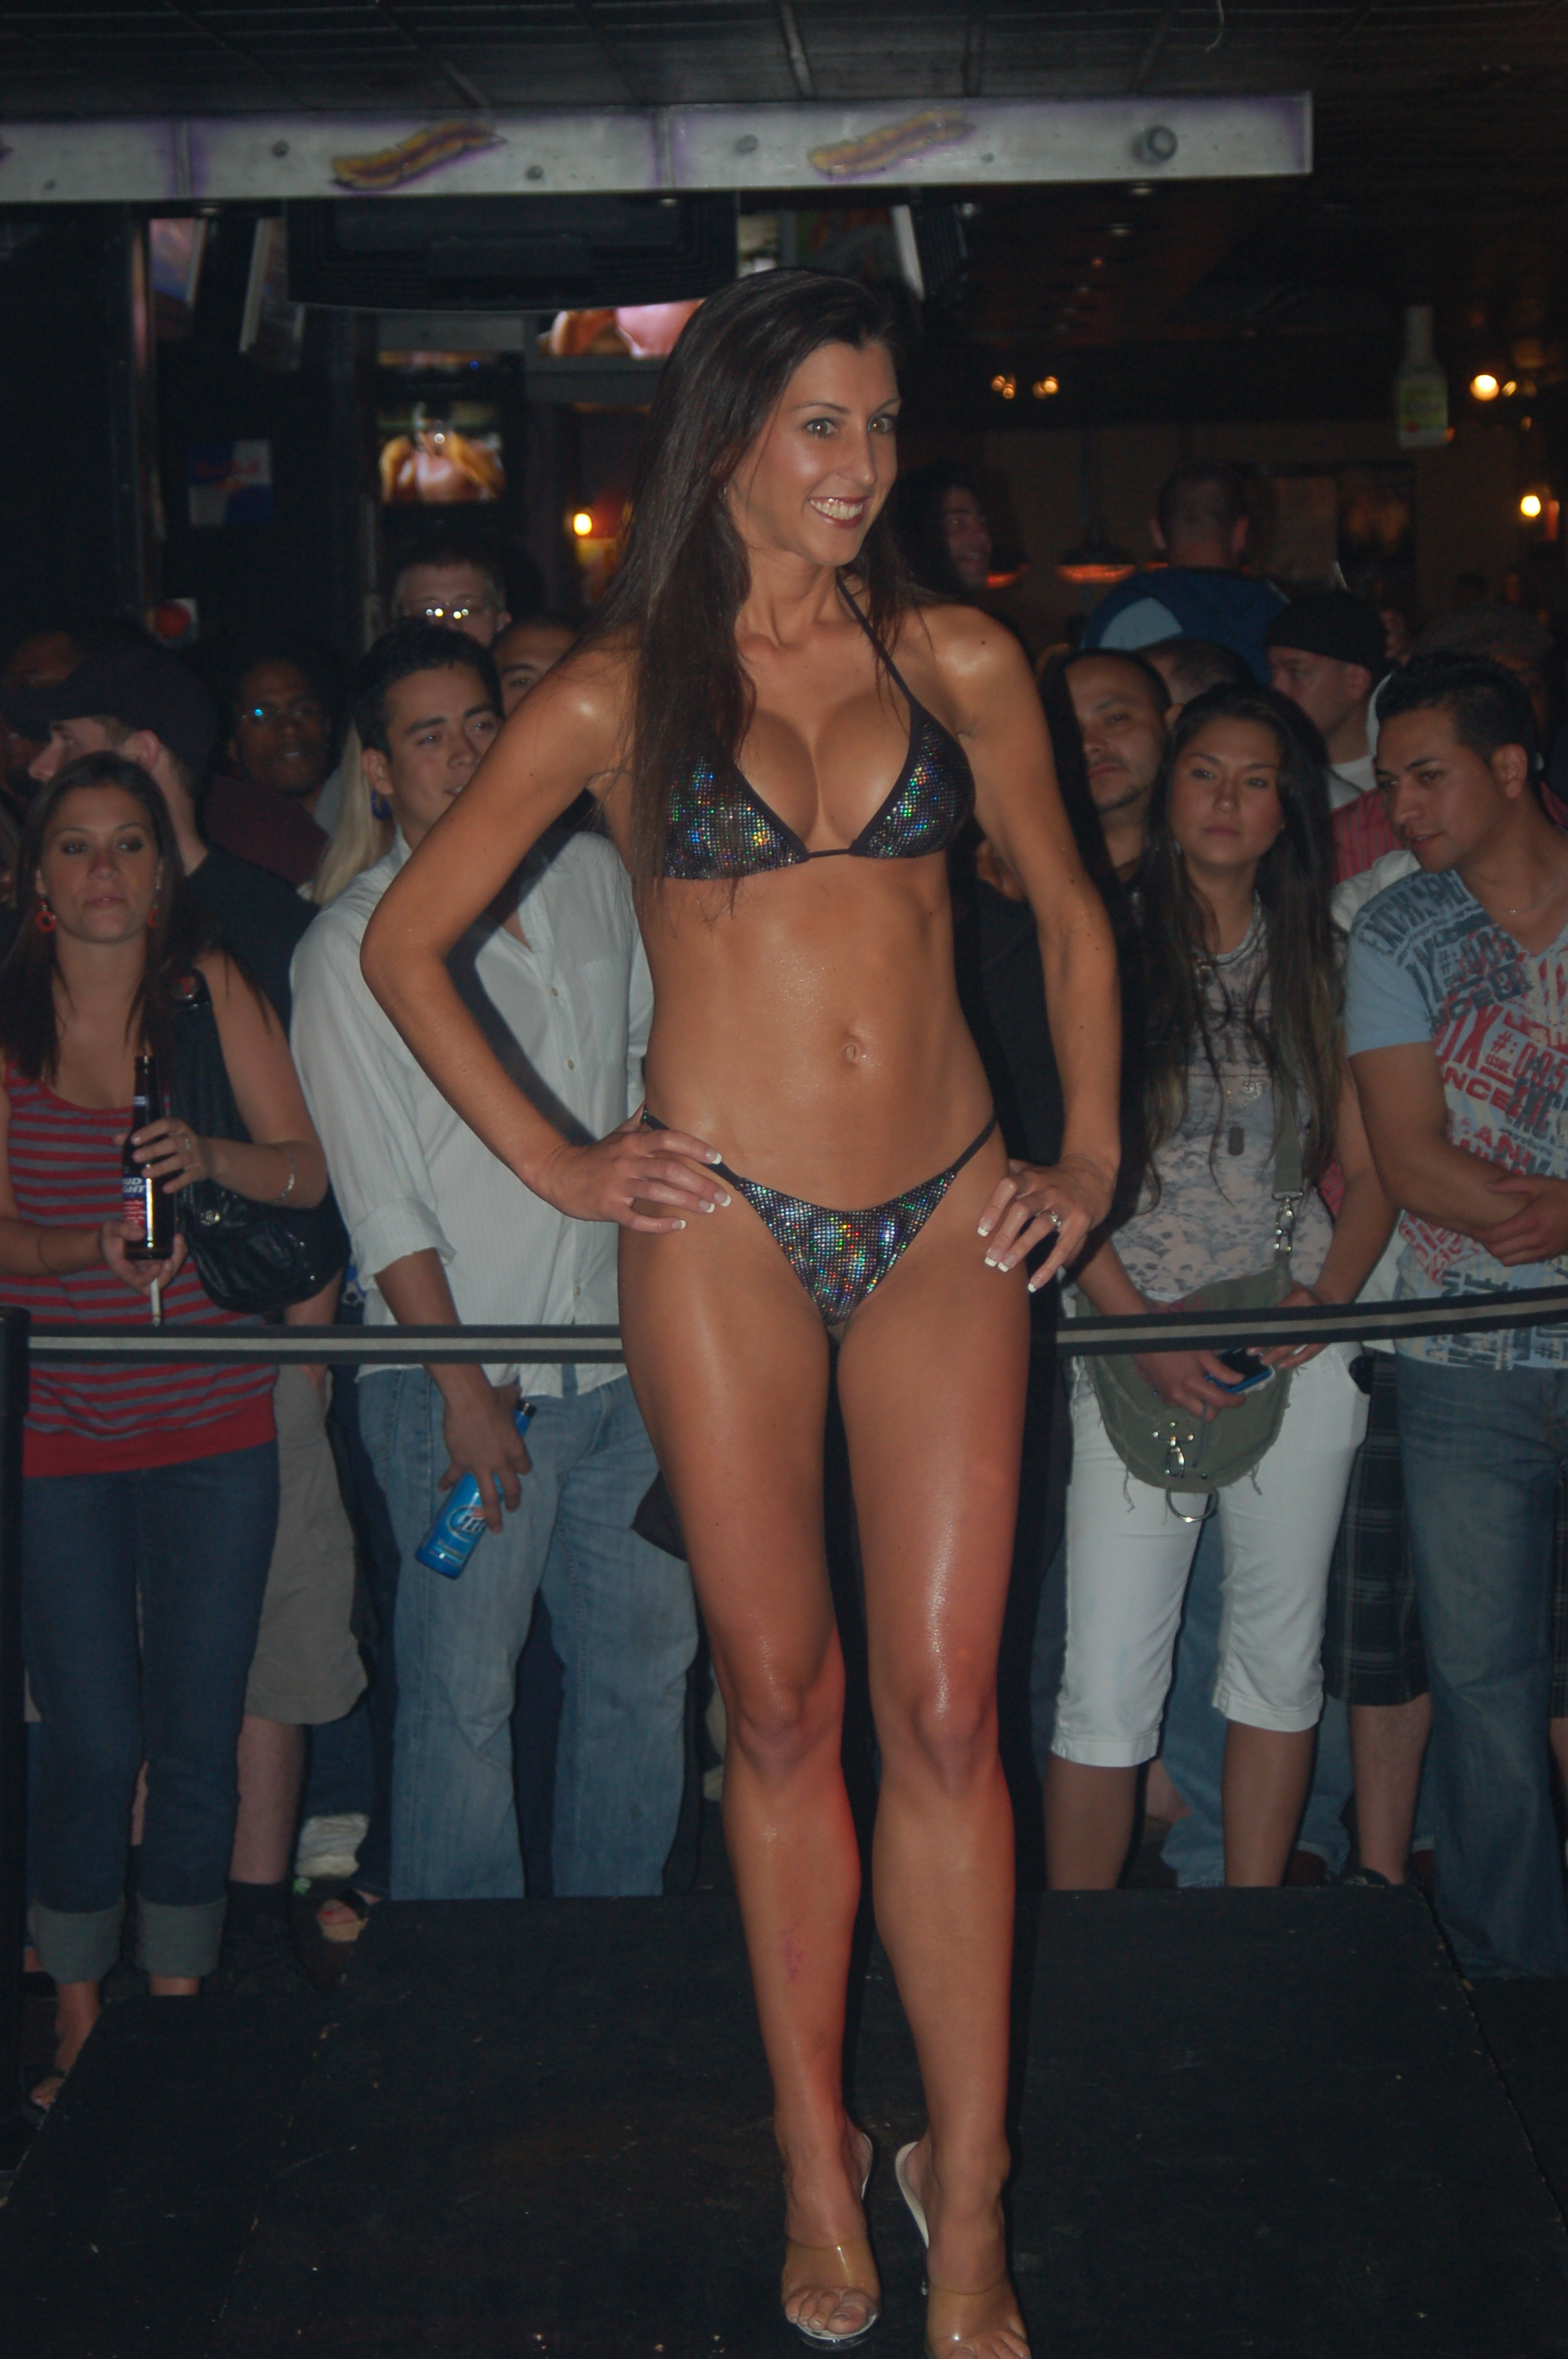 File:Bridges Bikini Contest 1.jpg